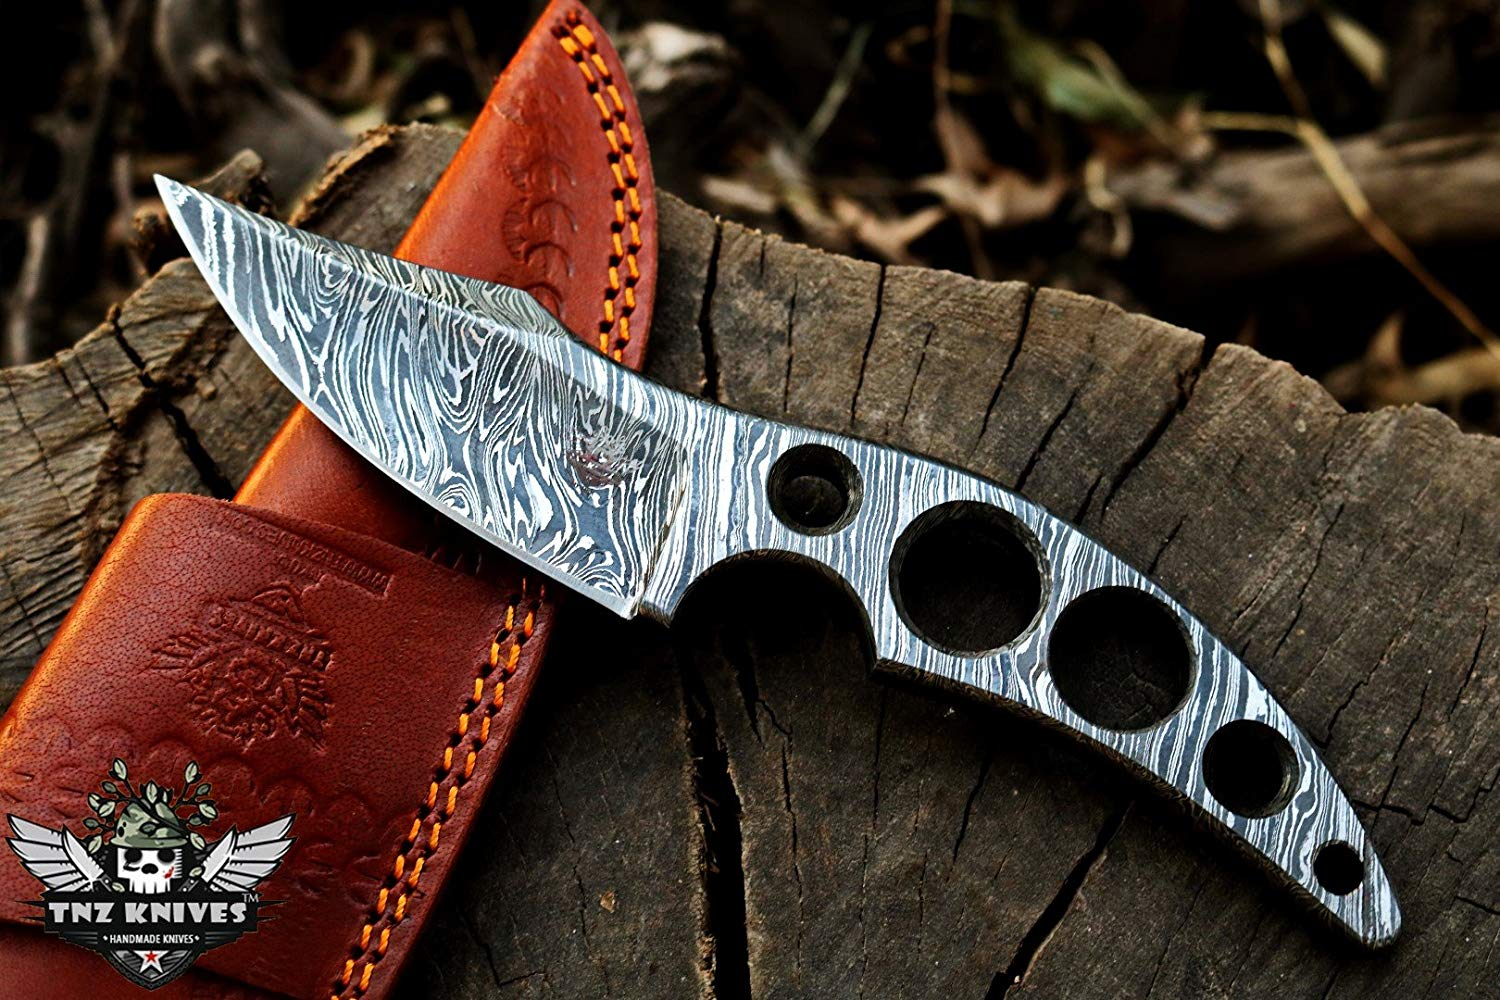 TNZ-219 Damascus Knife 8.2″ Long 4″Blade 11oz Damascus steel Hunting knife Damascus Blank Blade Skinner Outdoor Knife With Leather Cover TNZ Hand Made Damascus knives